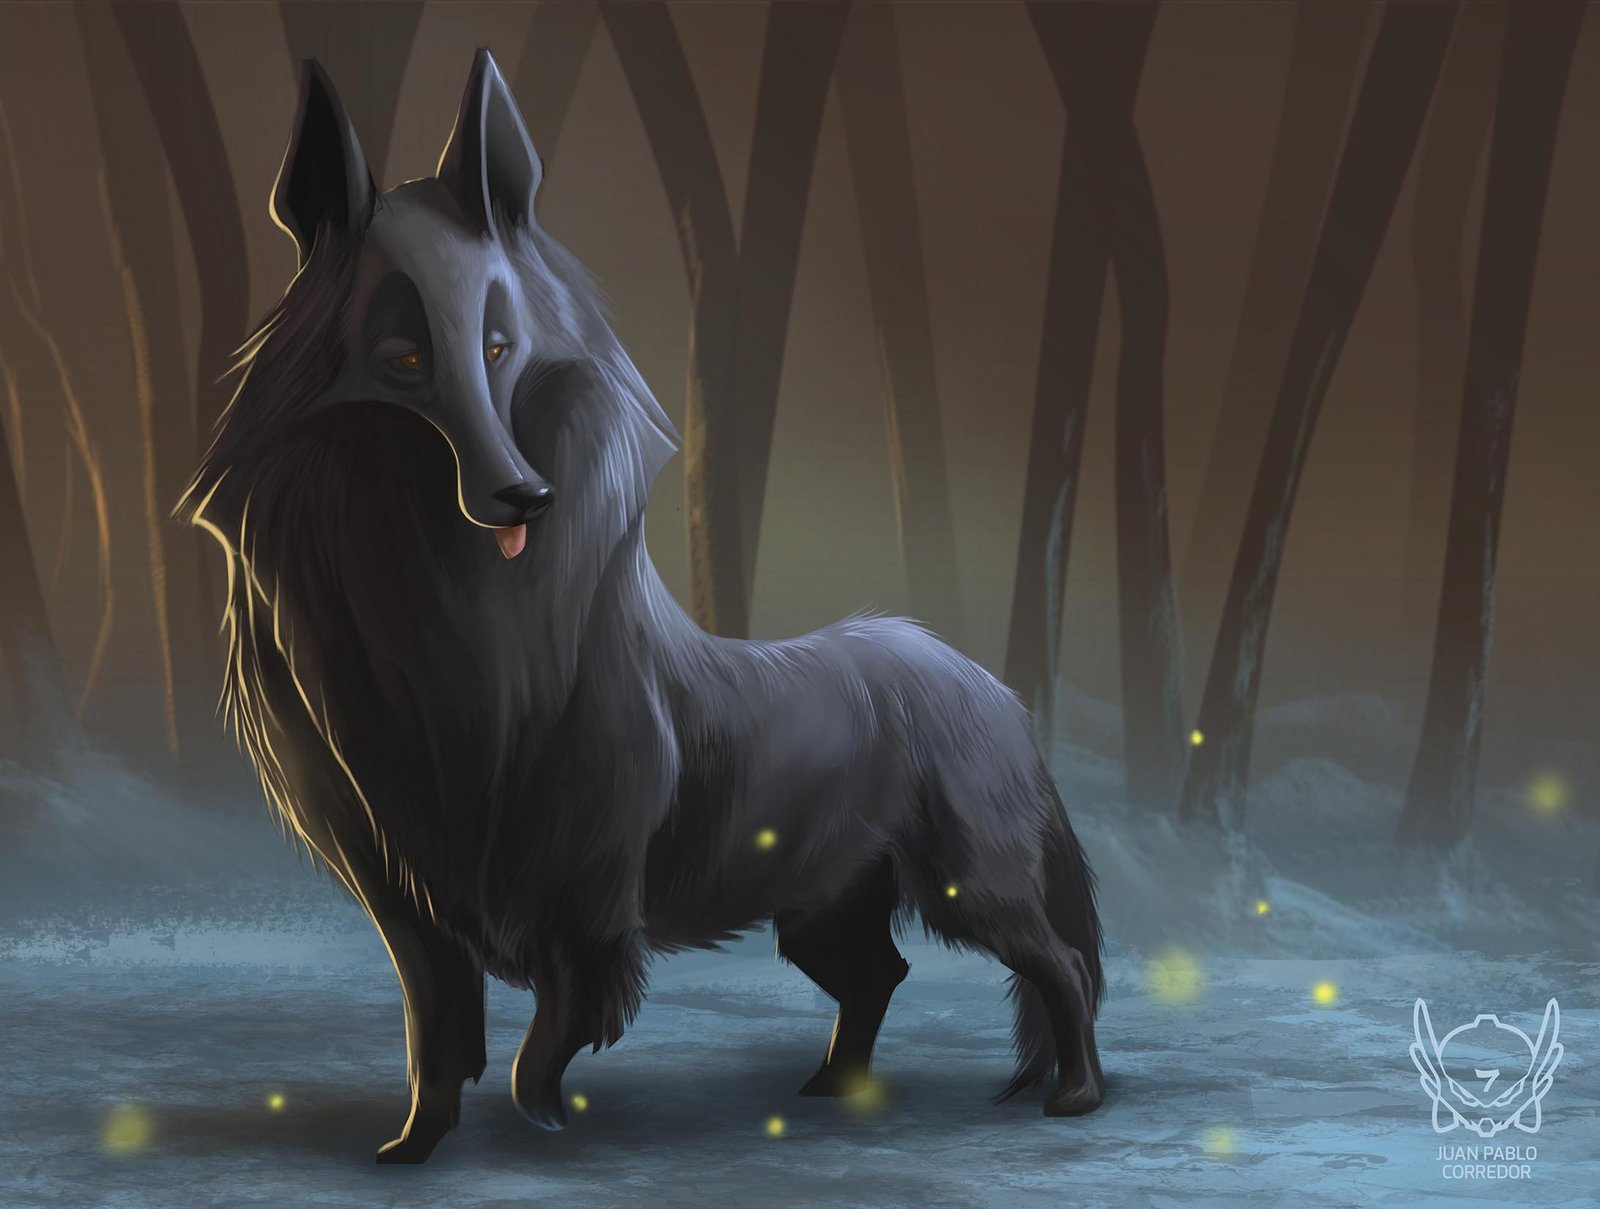 THE BELGIAN SHEPHERD